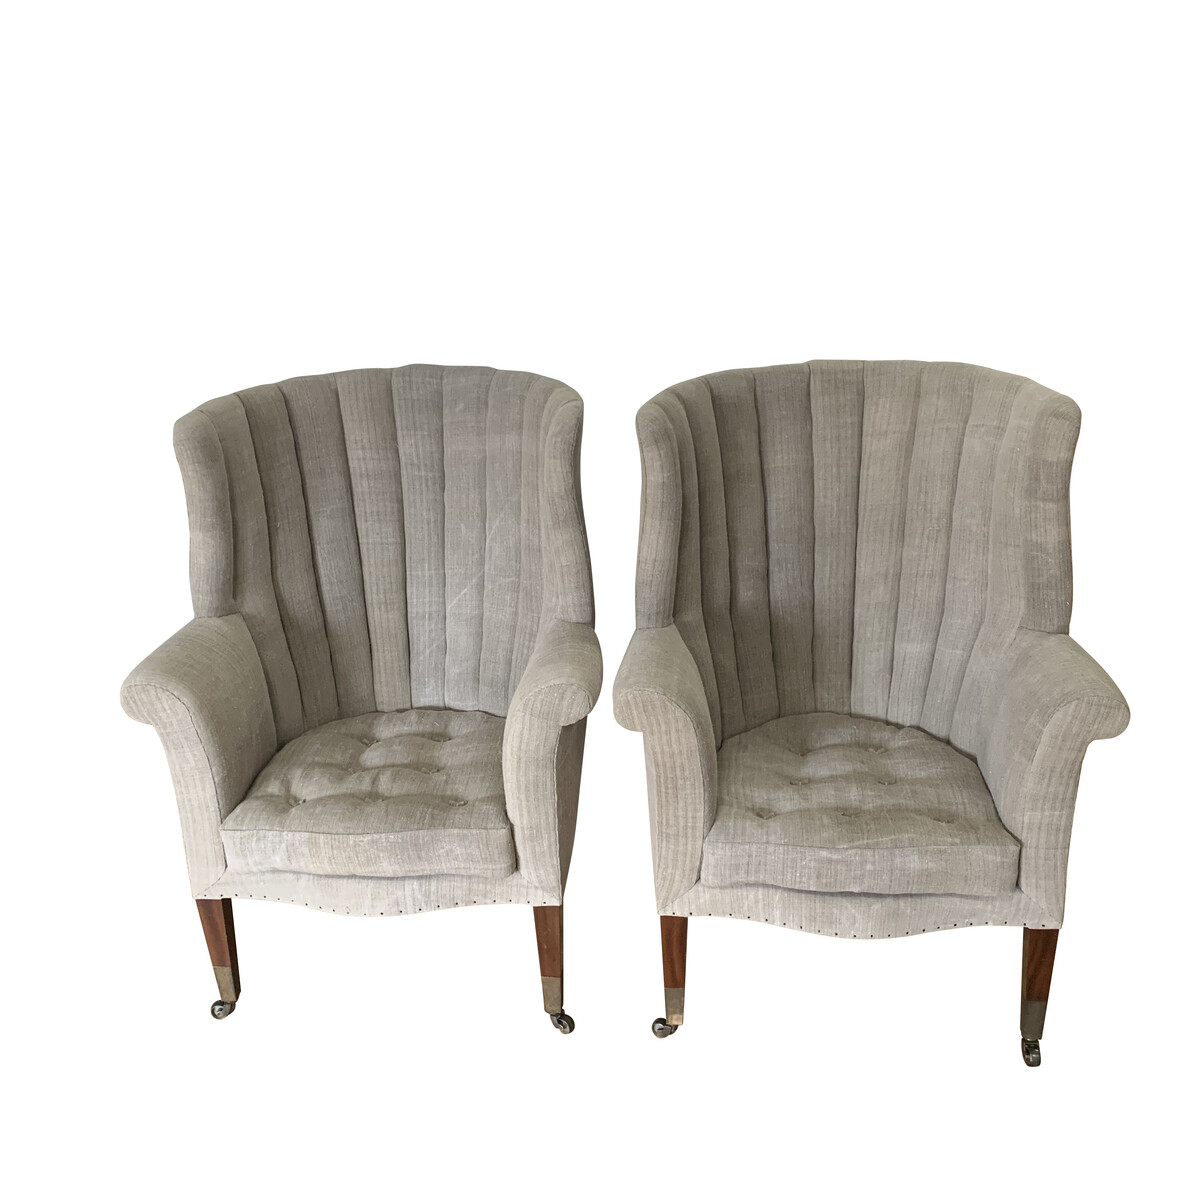 Balsamo Antiques 19thc English Pair Barrel Back Wing Chairs